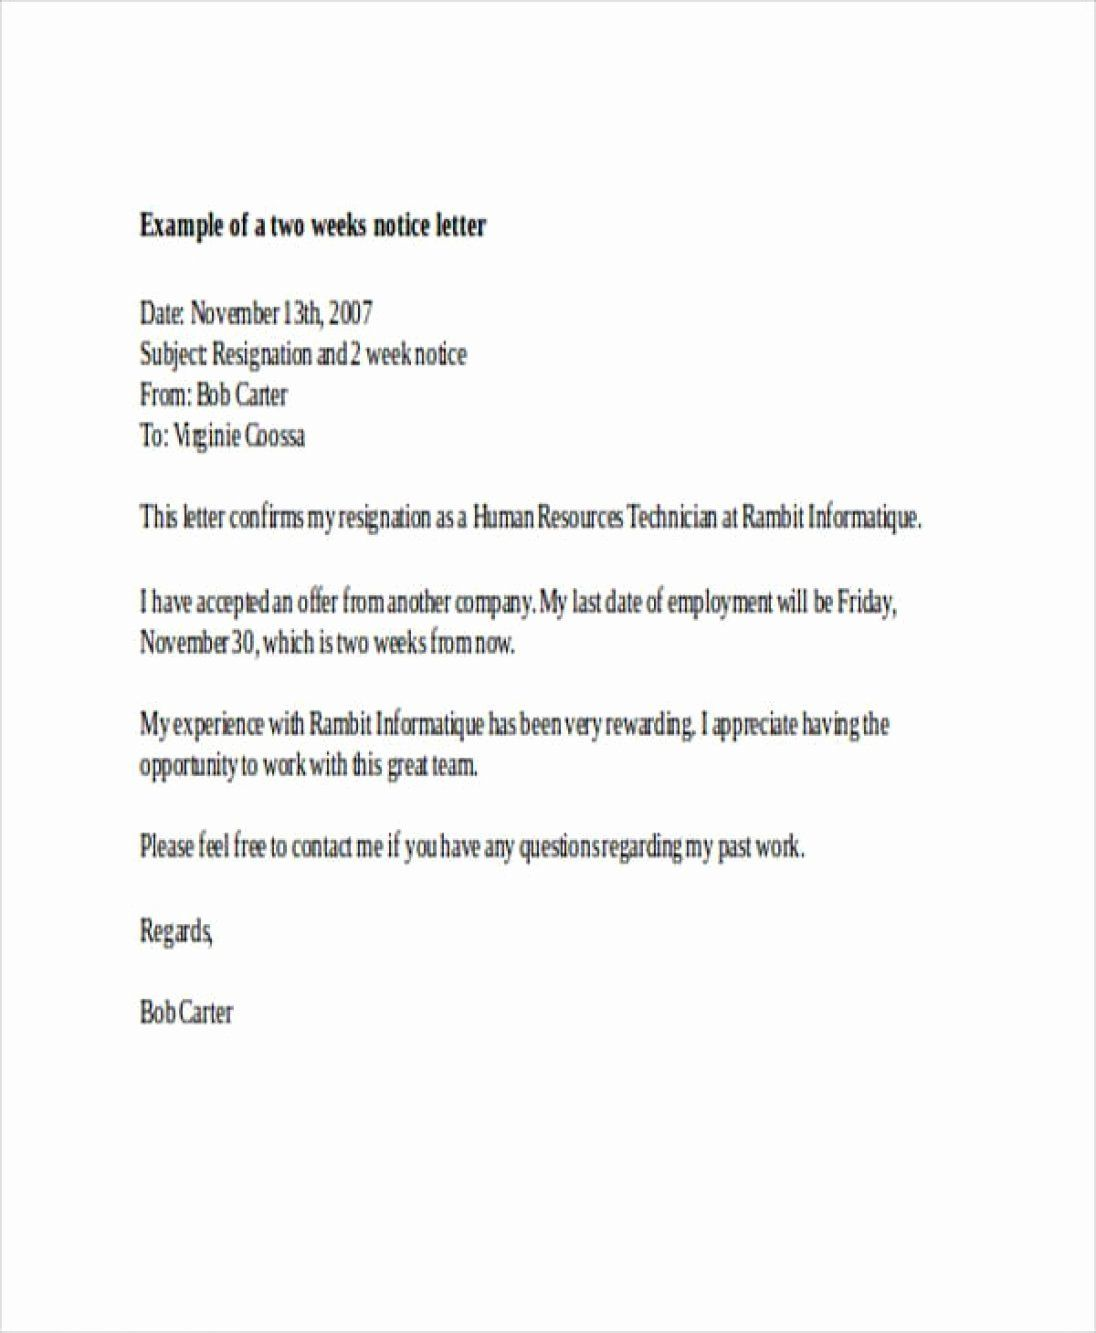 Two Week Resignation Letter Template Unique 11 12 Formal Two Week Notice Letter Two Weeks Notice Resignation Letter Letter Templates Nursing resignation letter 2 week notice